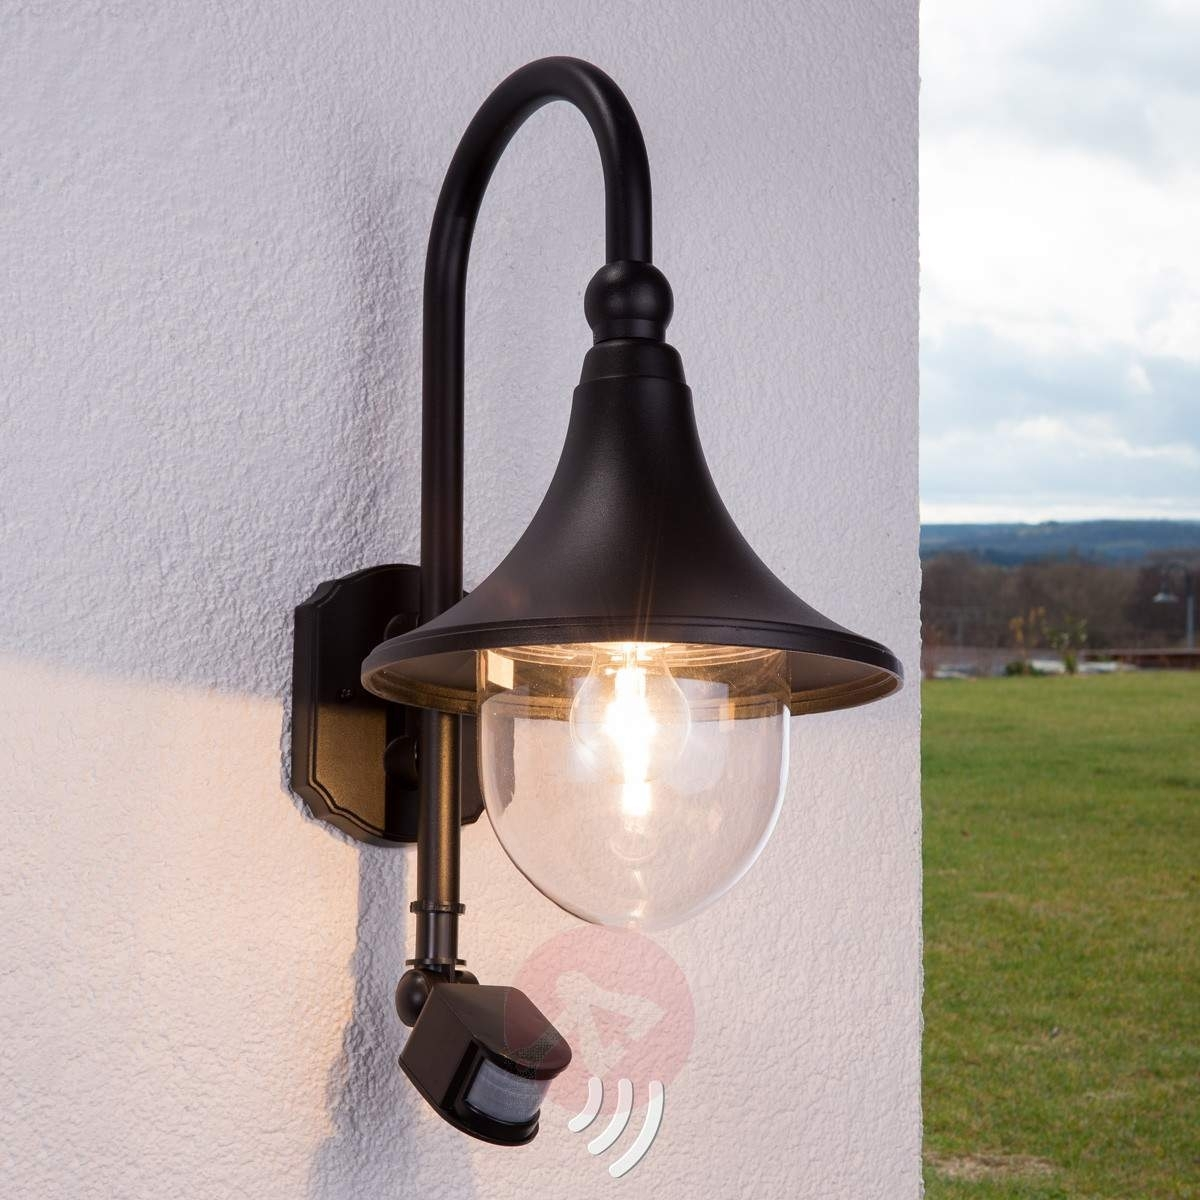 Inspiration about Daphne Outdoor Wall Light With Sensor | Lights.co.uk For Outdoor Wall Lighting With Sensor (#5 of 15)